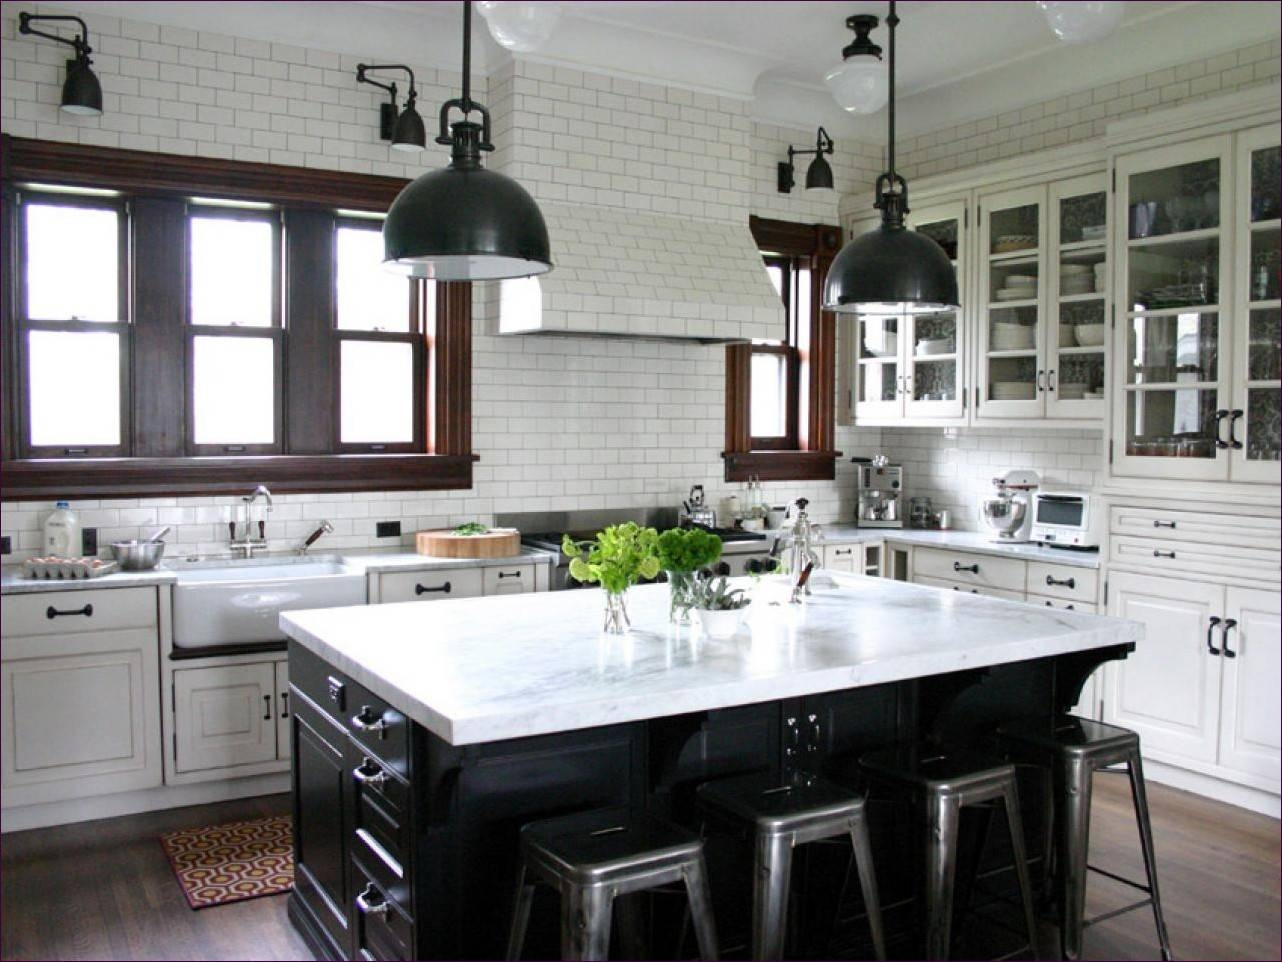 Kitchen Room : Amazing Simple French Country Decor French Country For 2018 French Country Wall Art (Gallery 20 of 20)